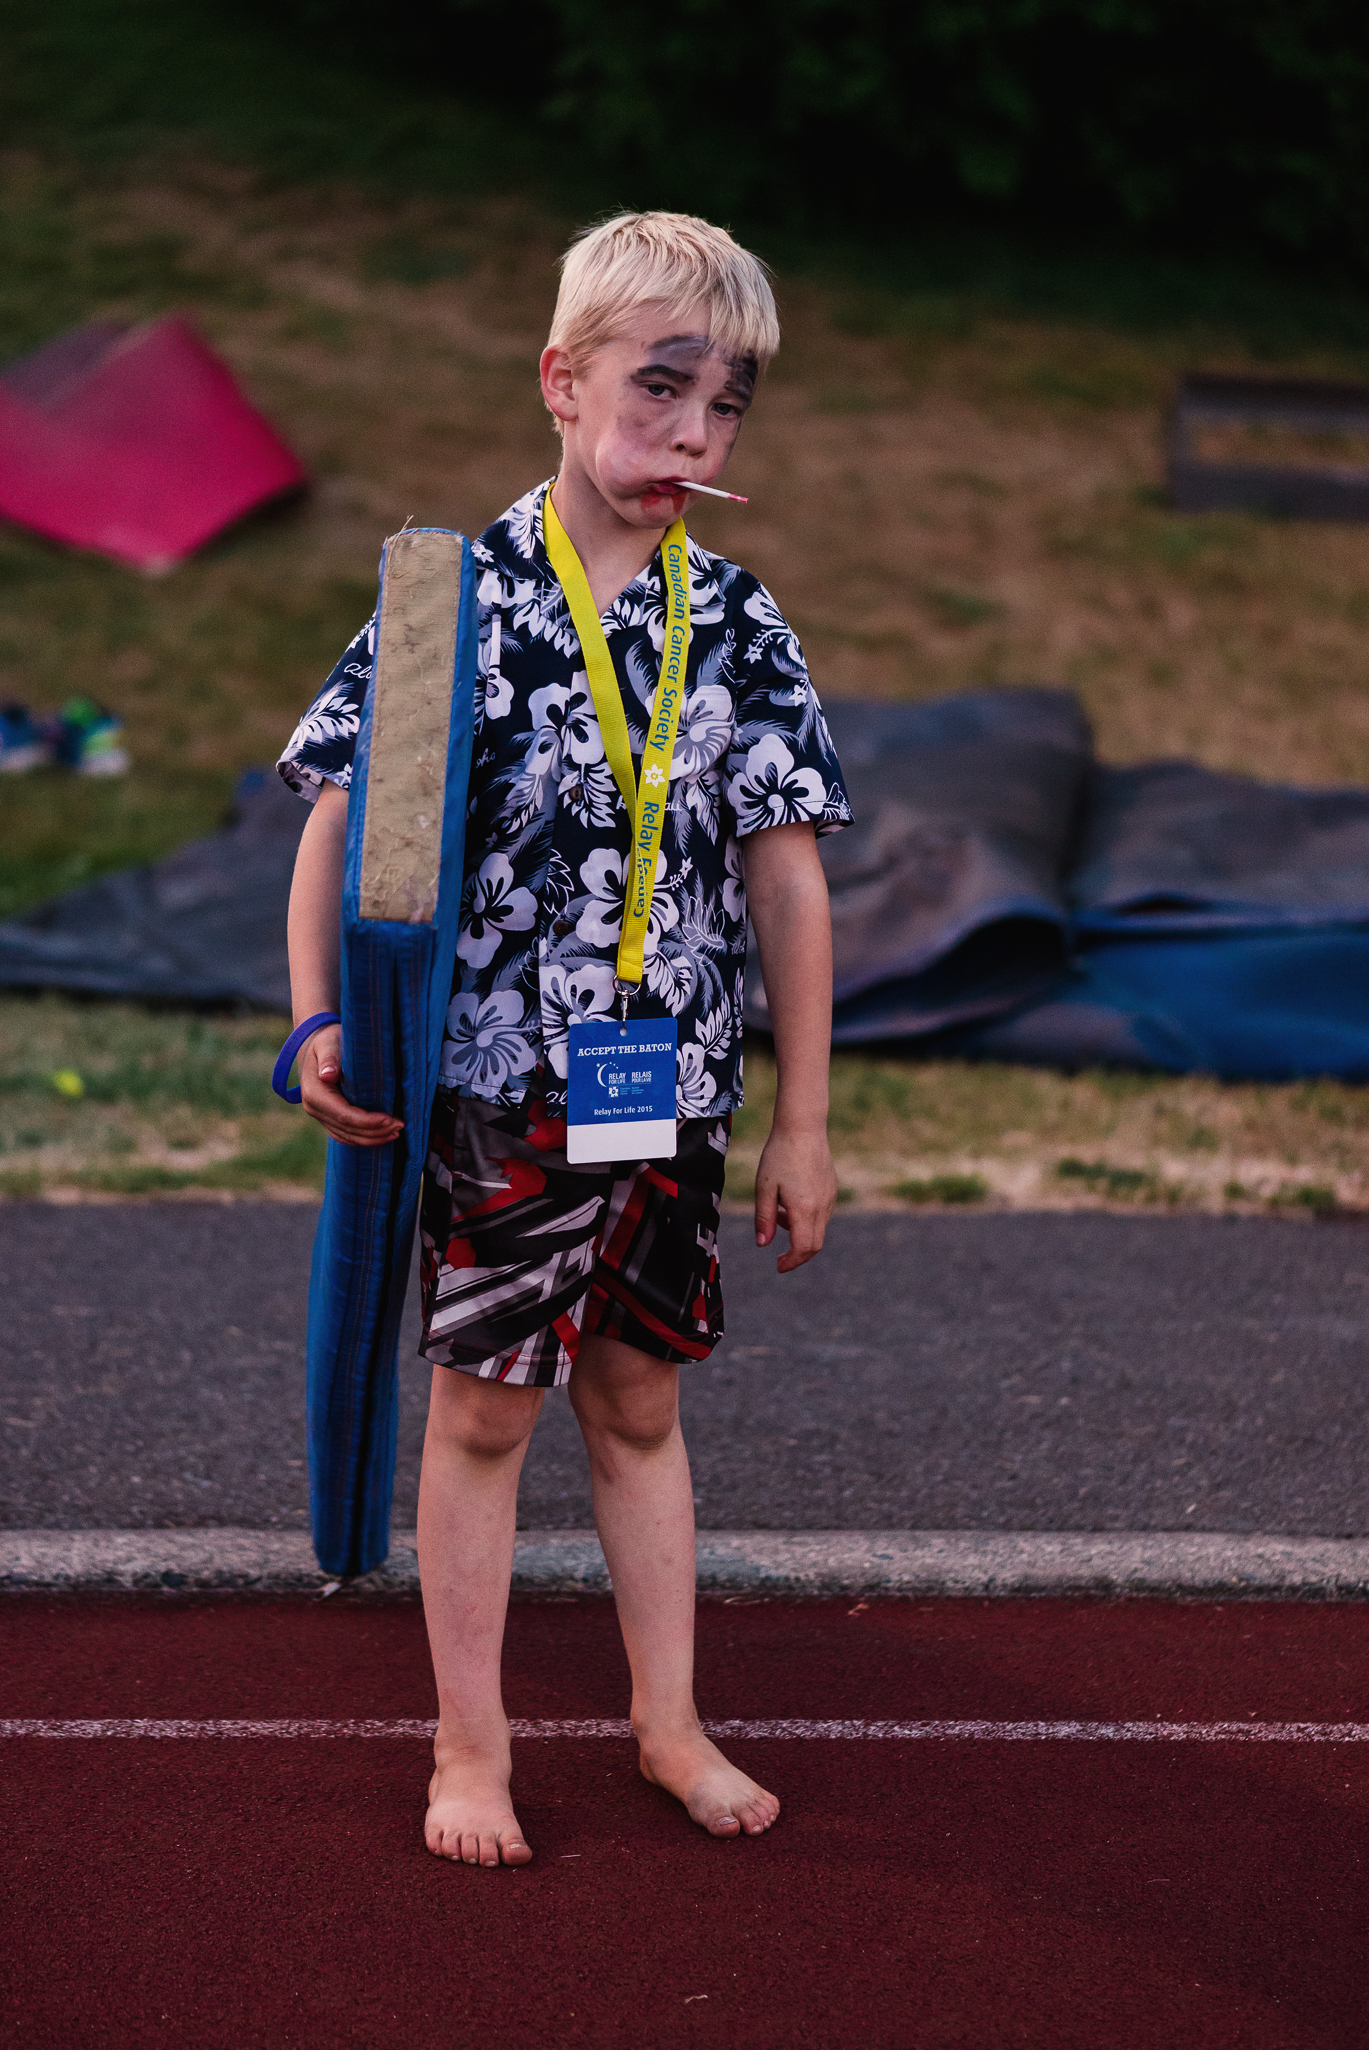 Lily_and_Lane_Relay_For_Life_Victoria_2015 (346).jpg